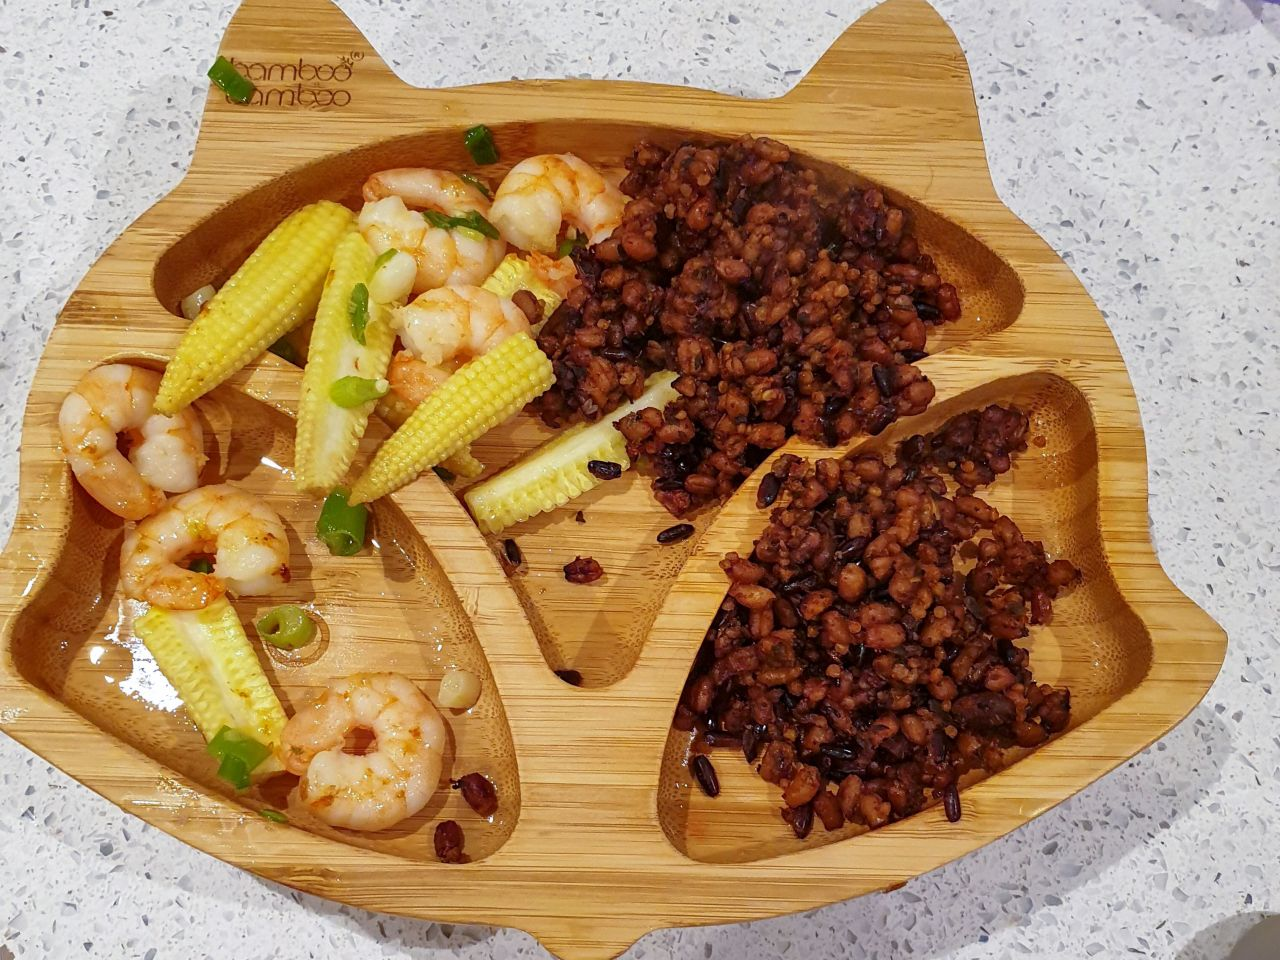 Baby led weaning meal - lentils, prawns and baby corn